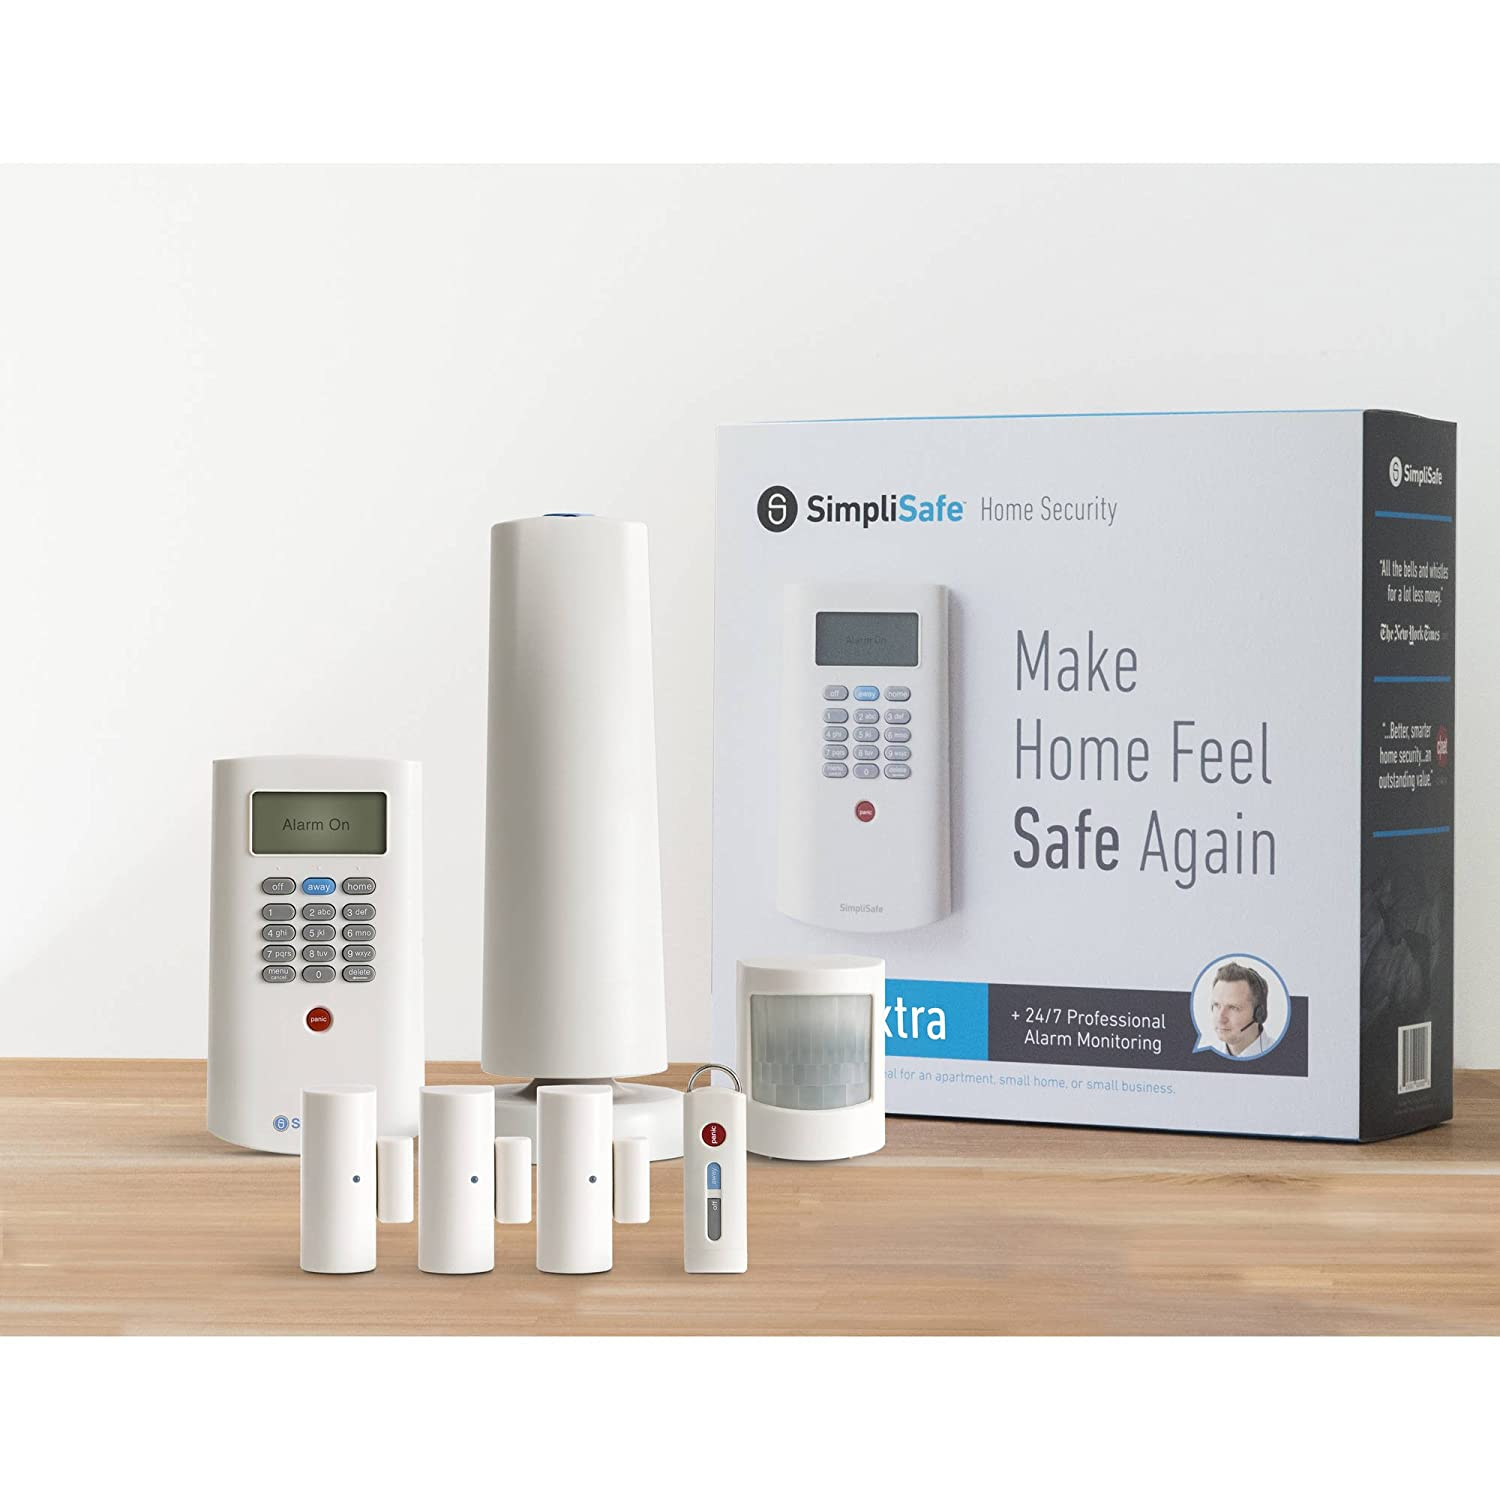 Amazon.com: simplisafe Kit de Home sistema de seguridad 7 ...